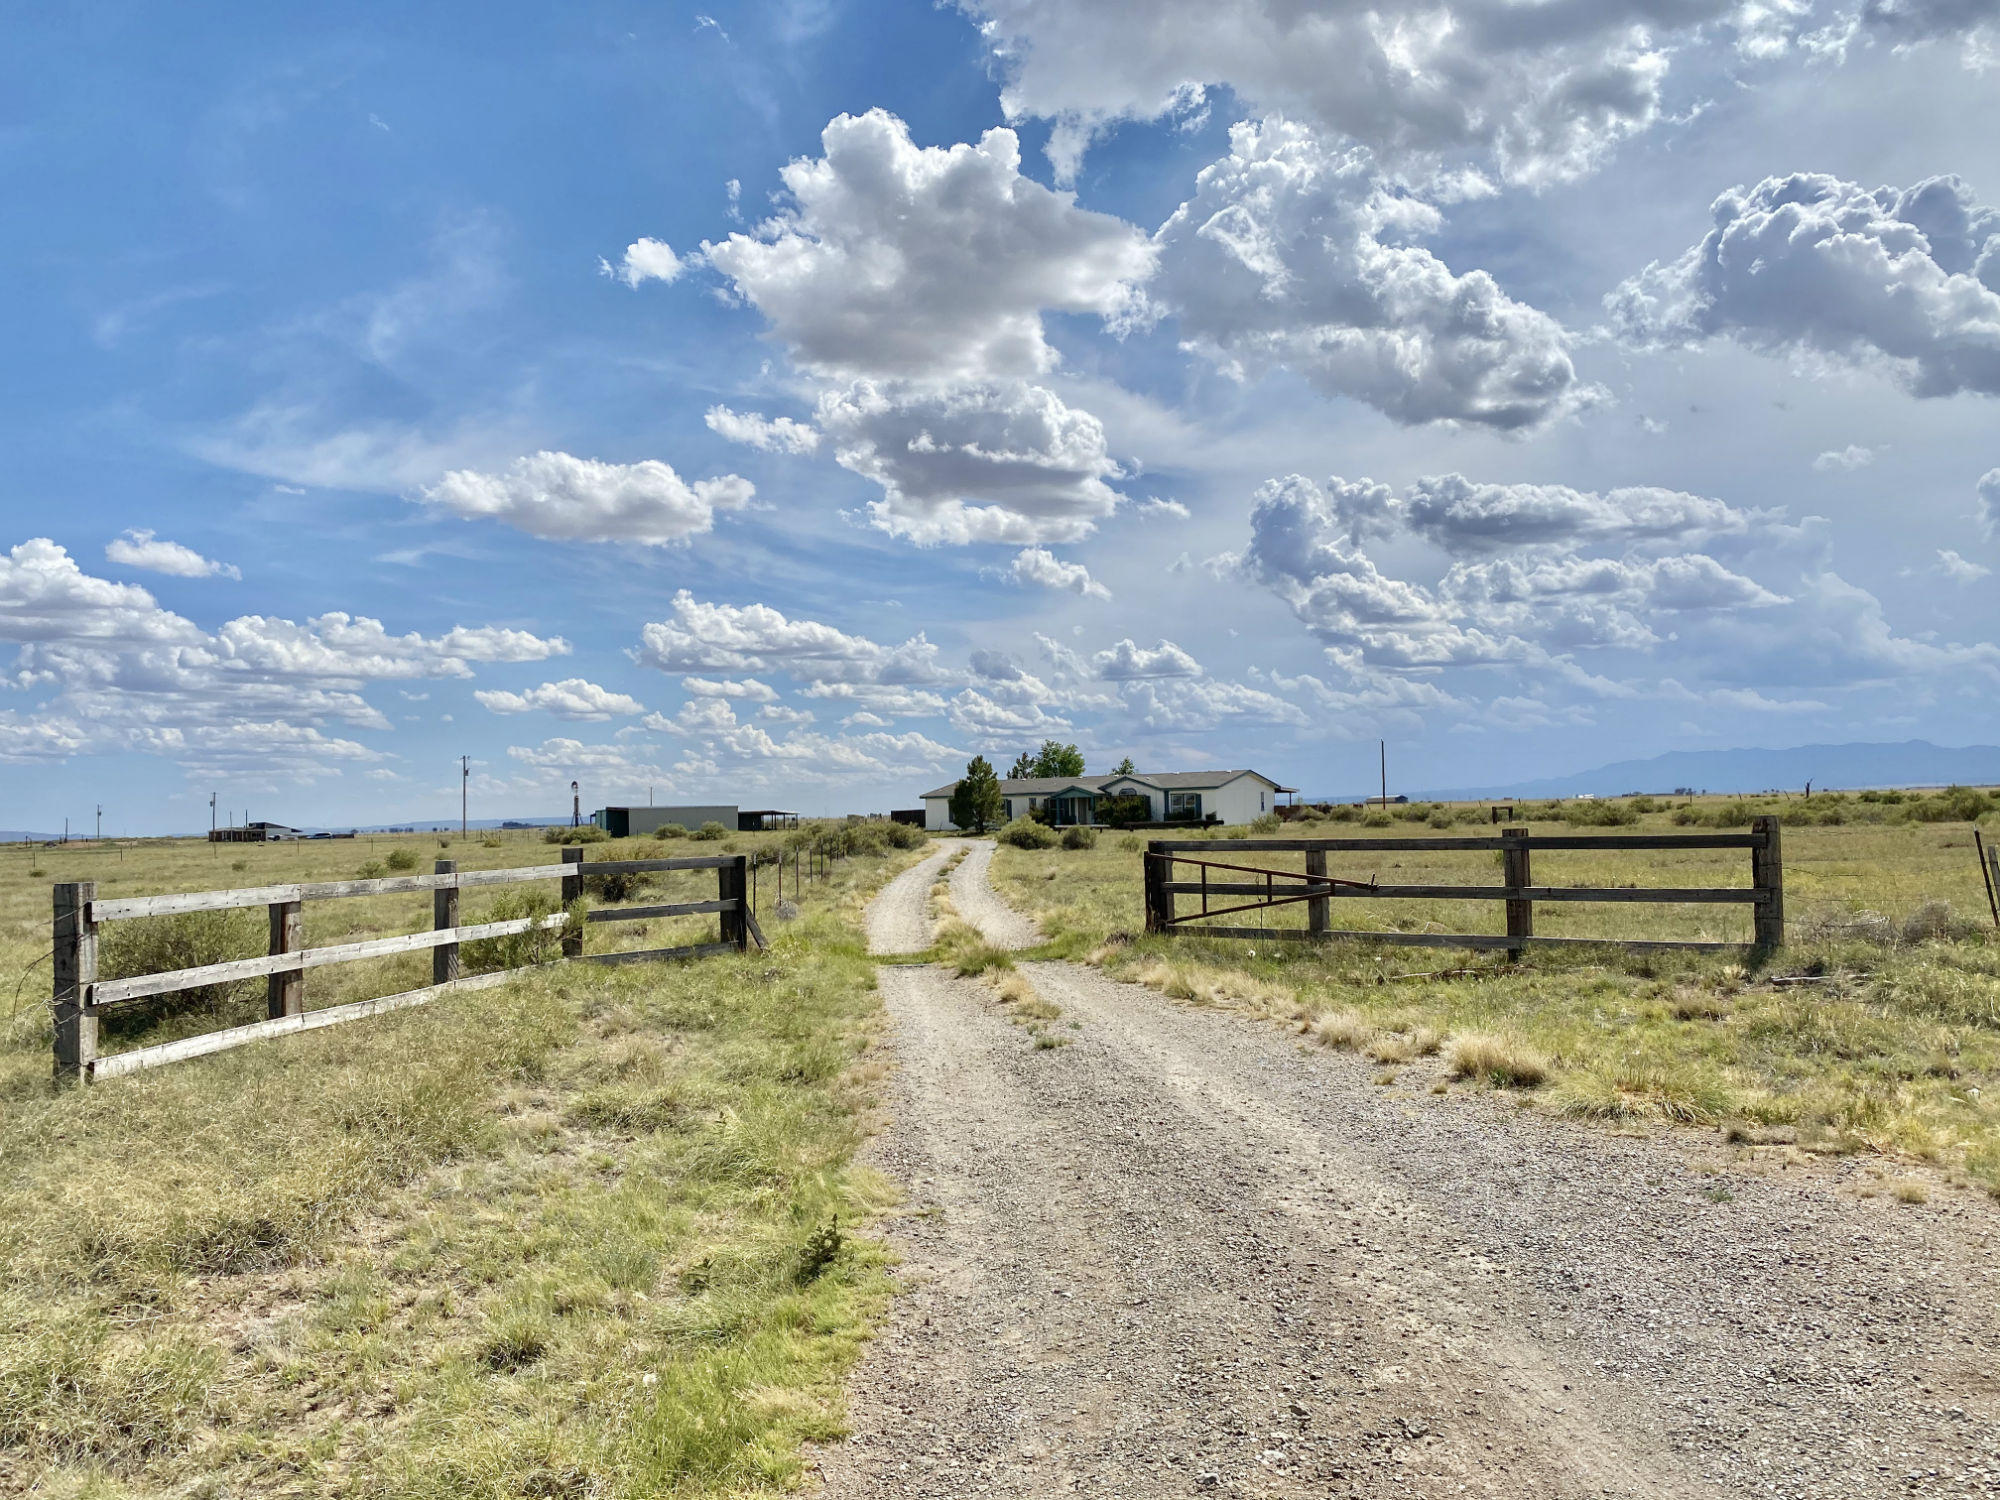 Bring the horses and enjoy peaceful country living on 11.96 acres just 3 miles from the center of Estancia at this fantastic HUD home! Special features include spacious master suite, 2 living areas, formal &  informal dining, and even jack-and-jill bdrms. Equal Housing Opportunity, managed by Chronos Solutions. HUD case #361-305607 / listed IE (FHA insurable with up to $10,000 buyer repair escrow). HUD homes are sold AS-IS w/all faults; no pre-closing repairs or payments will be made for any reason. For Utility Turn Ons: Buyer pays all fees to get utilities on with accepted bid + $150 FSM deposit. Approval must be granted by HUD's field service mgr. Property Condition Report and Property Listing Disclosure available but not to replace home inspections. To submit bids visit HUD Home Store.